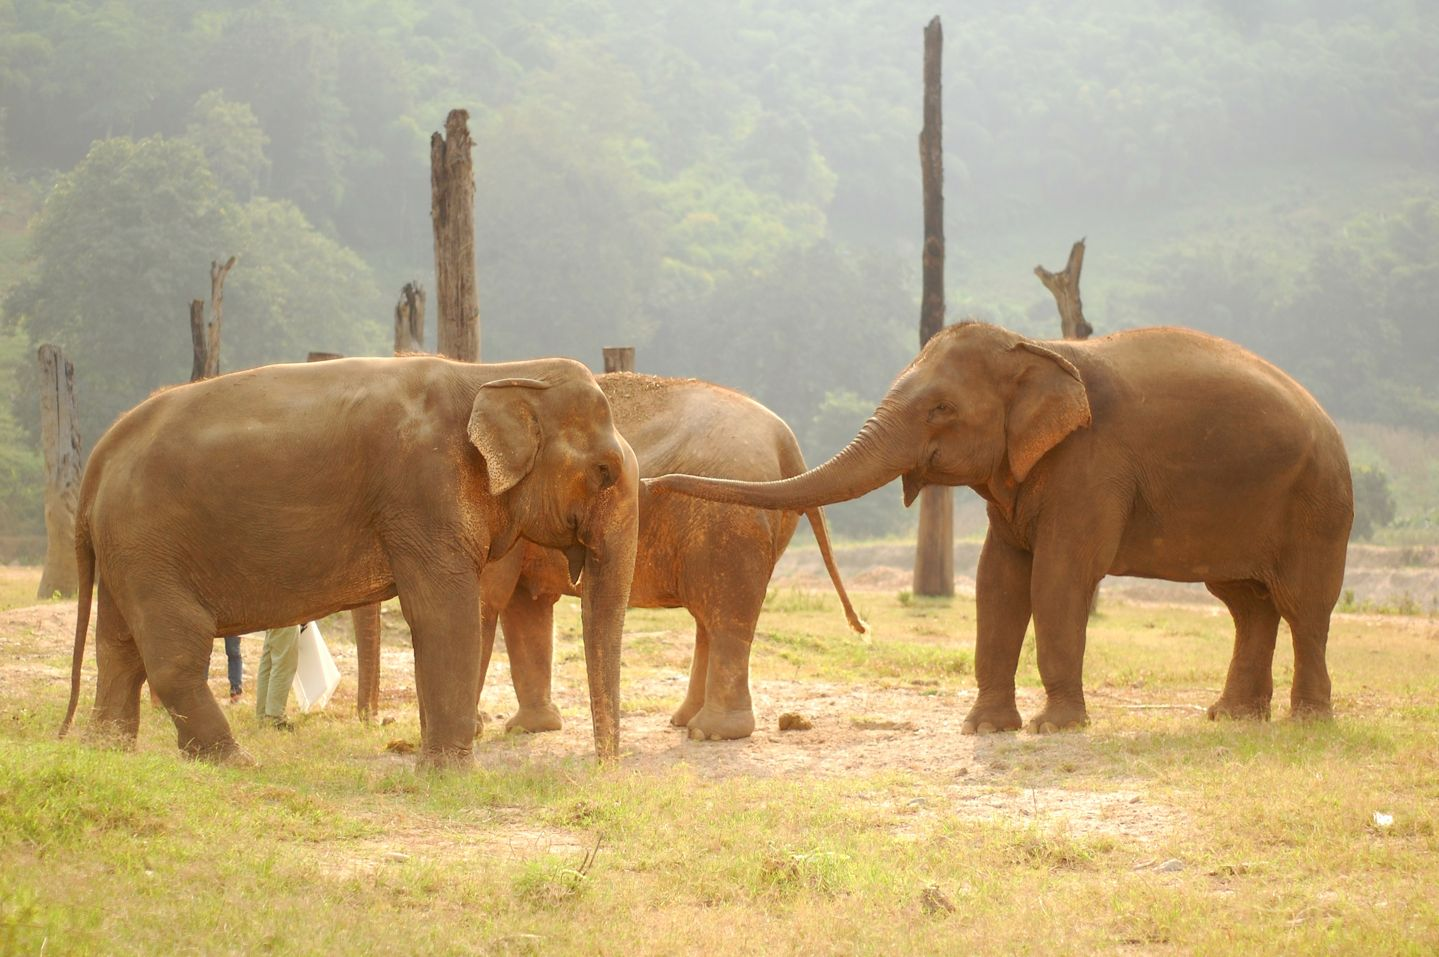 10 photos from southeast asia that will make you smile elephants southeast photo essay